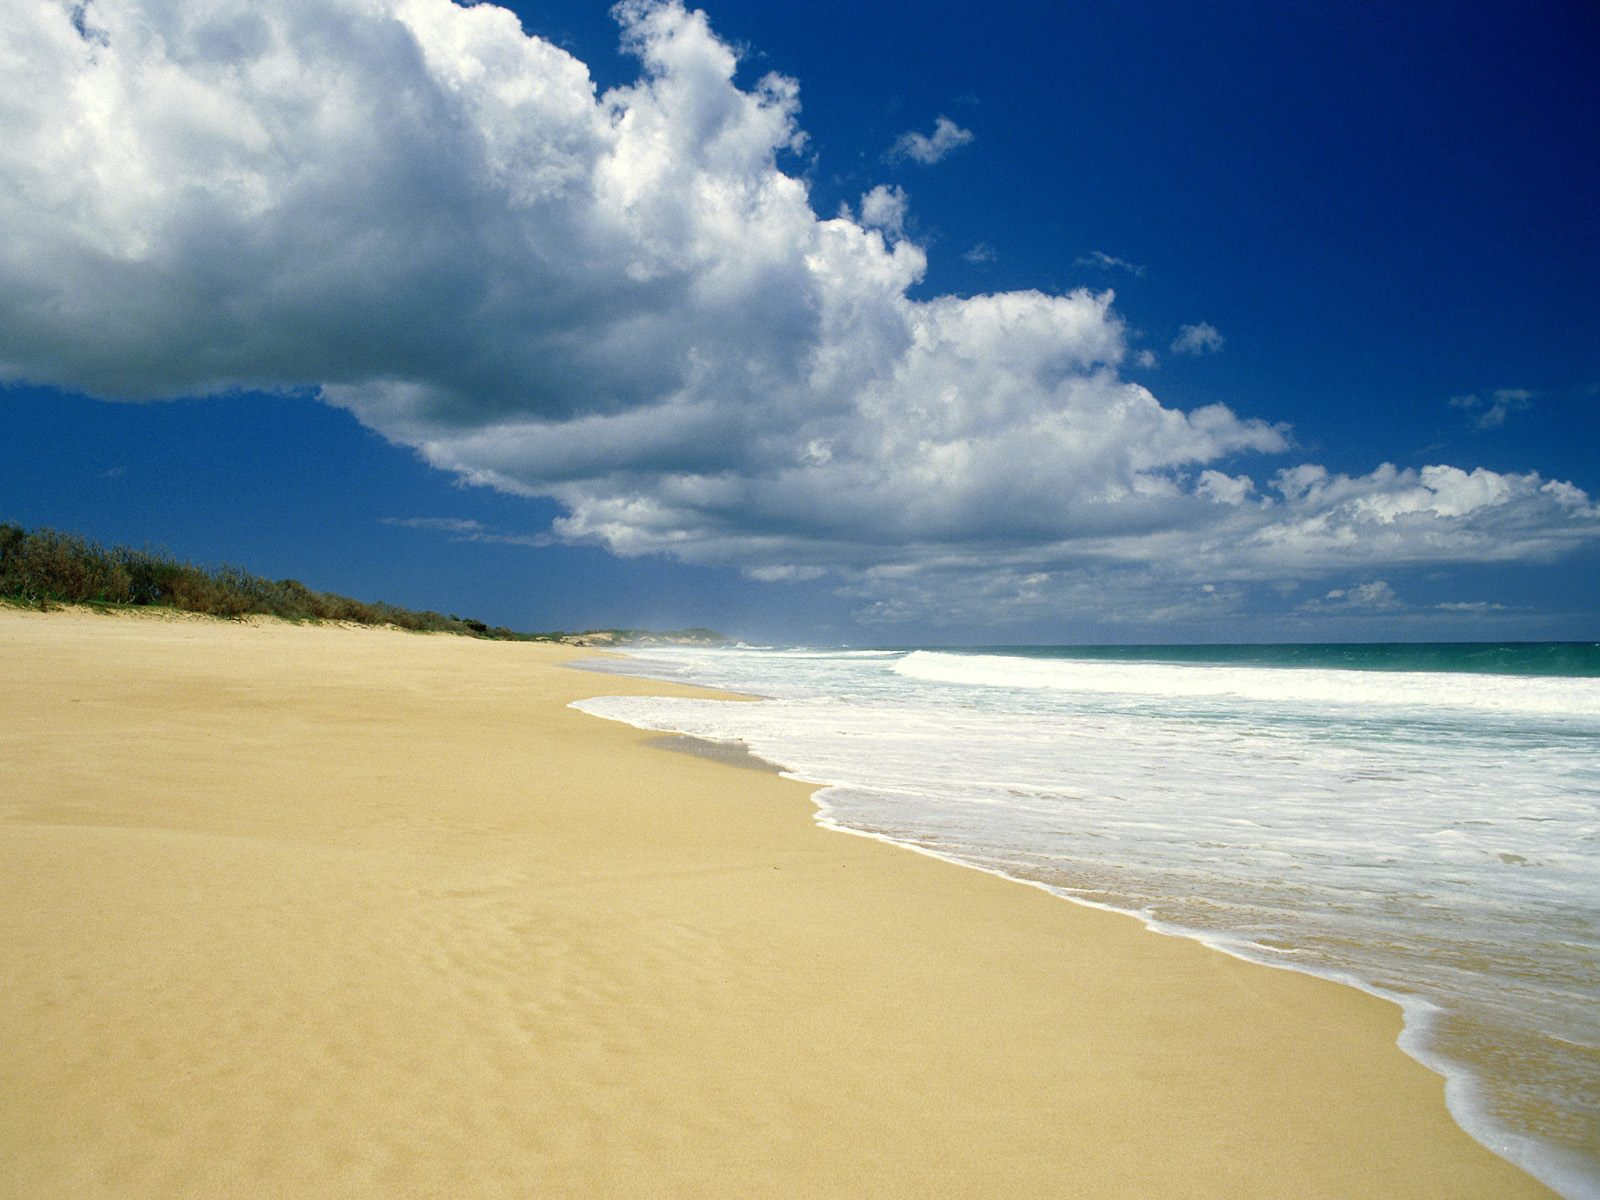 http://3.bp.blogspot.com/_2IU2Nt4rD1k/TCh-c0FN5fI/AAAAAAAABxs/zdw8YZ71mp8/s1600/windows7_beach_wallpapers.jpg